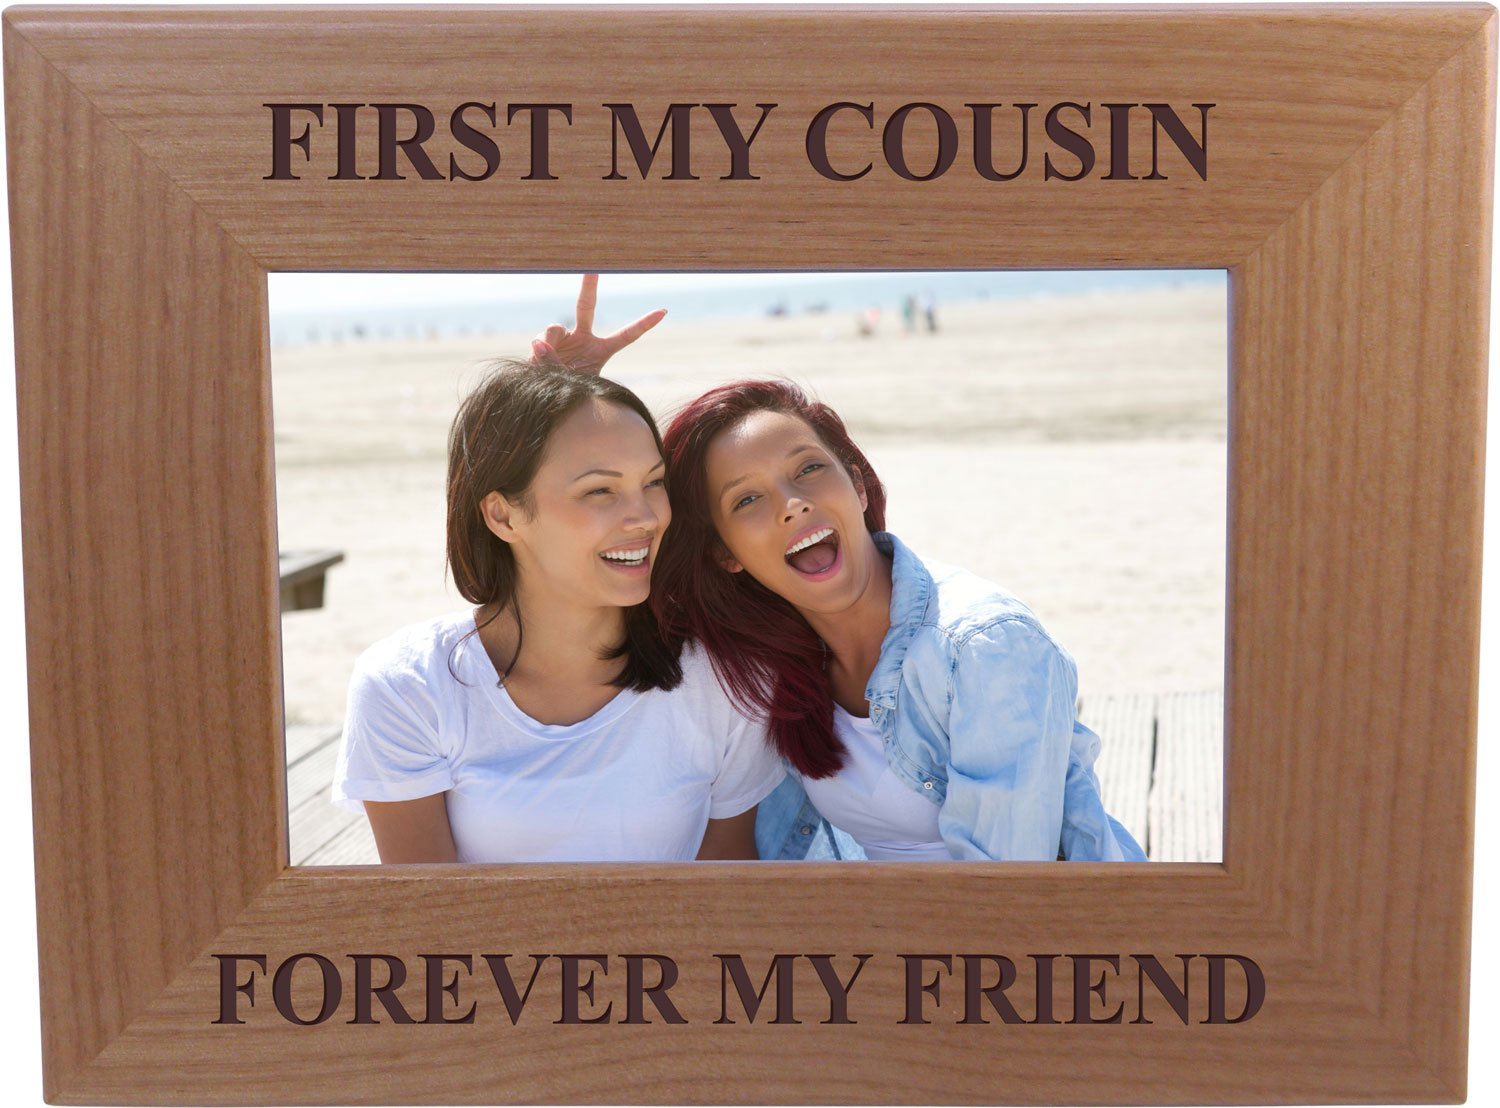 Amazon.com - First My Cousin Forever My Friend - 4x6 Inch Wood ...